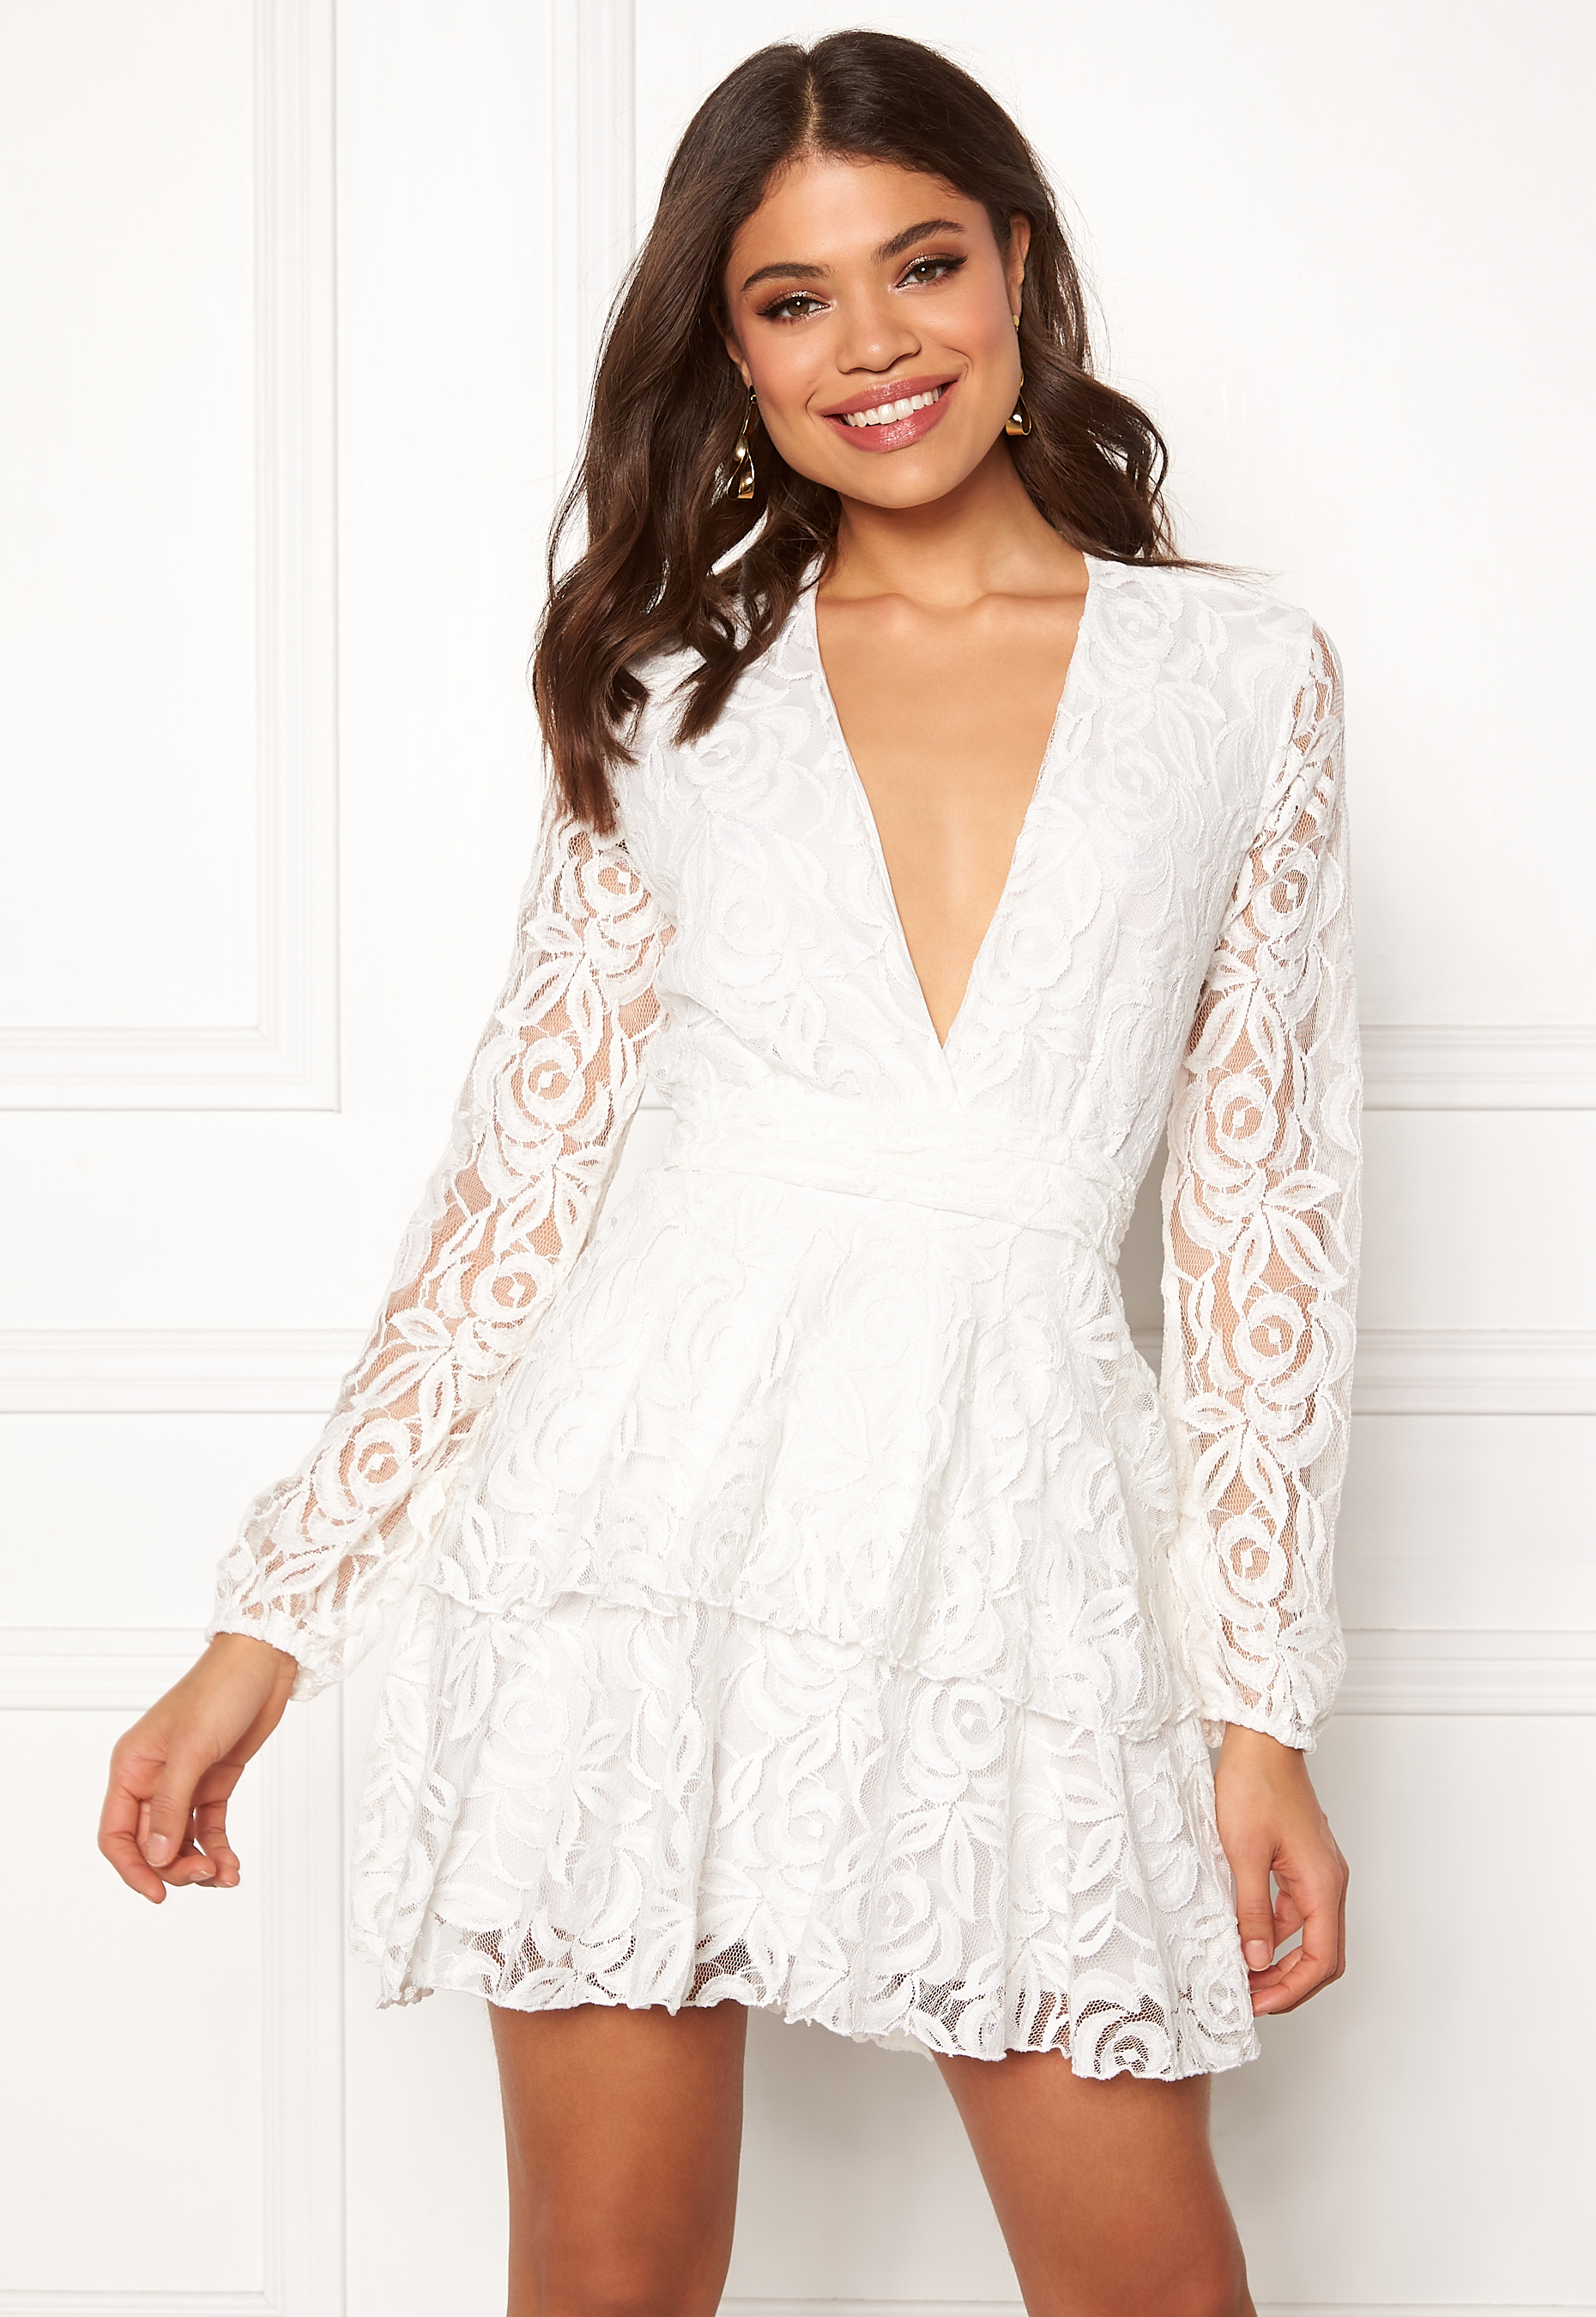 89efdfba37 John Zack Lace Deep V Skater Dress White - Bubbleroom